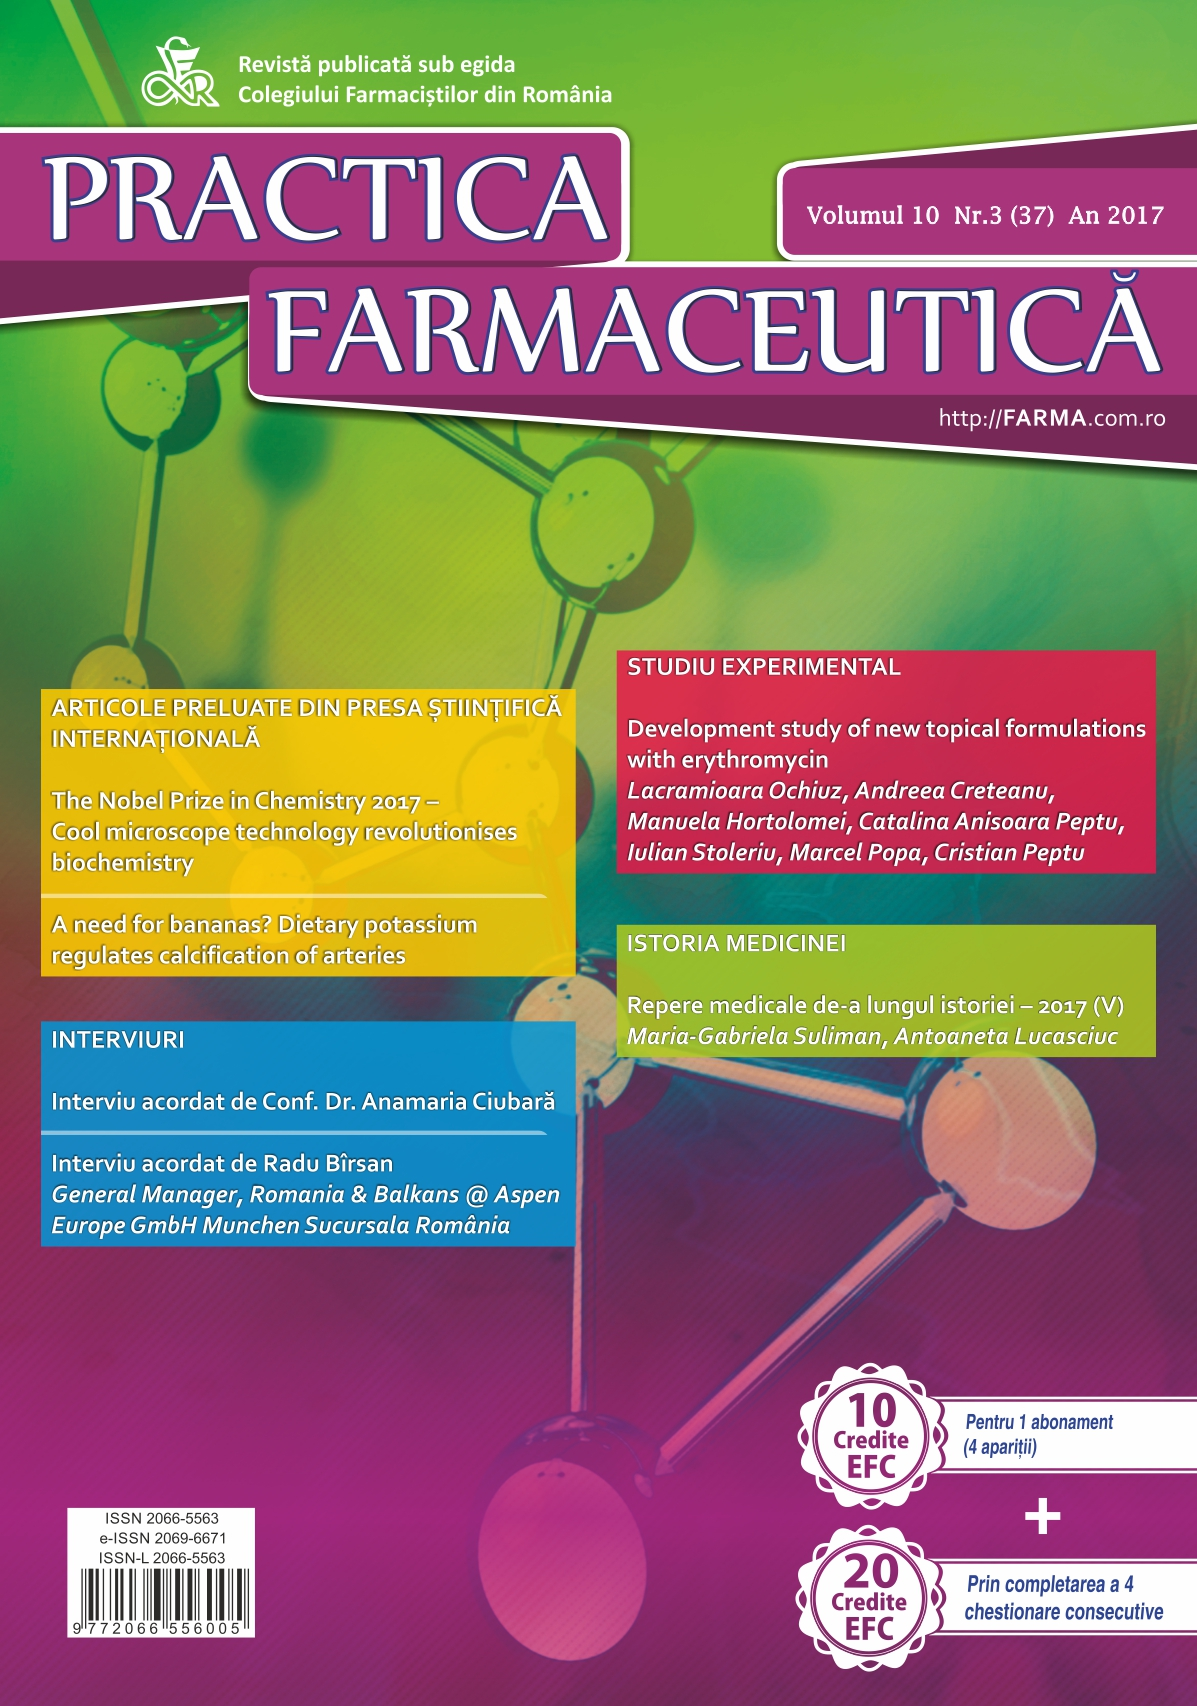 Revista Practica Farmaceutica, Vol. X, No. 3 (37), 2017